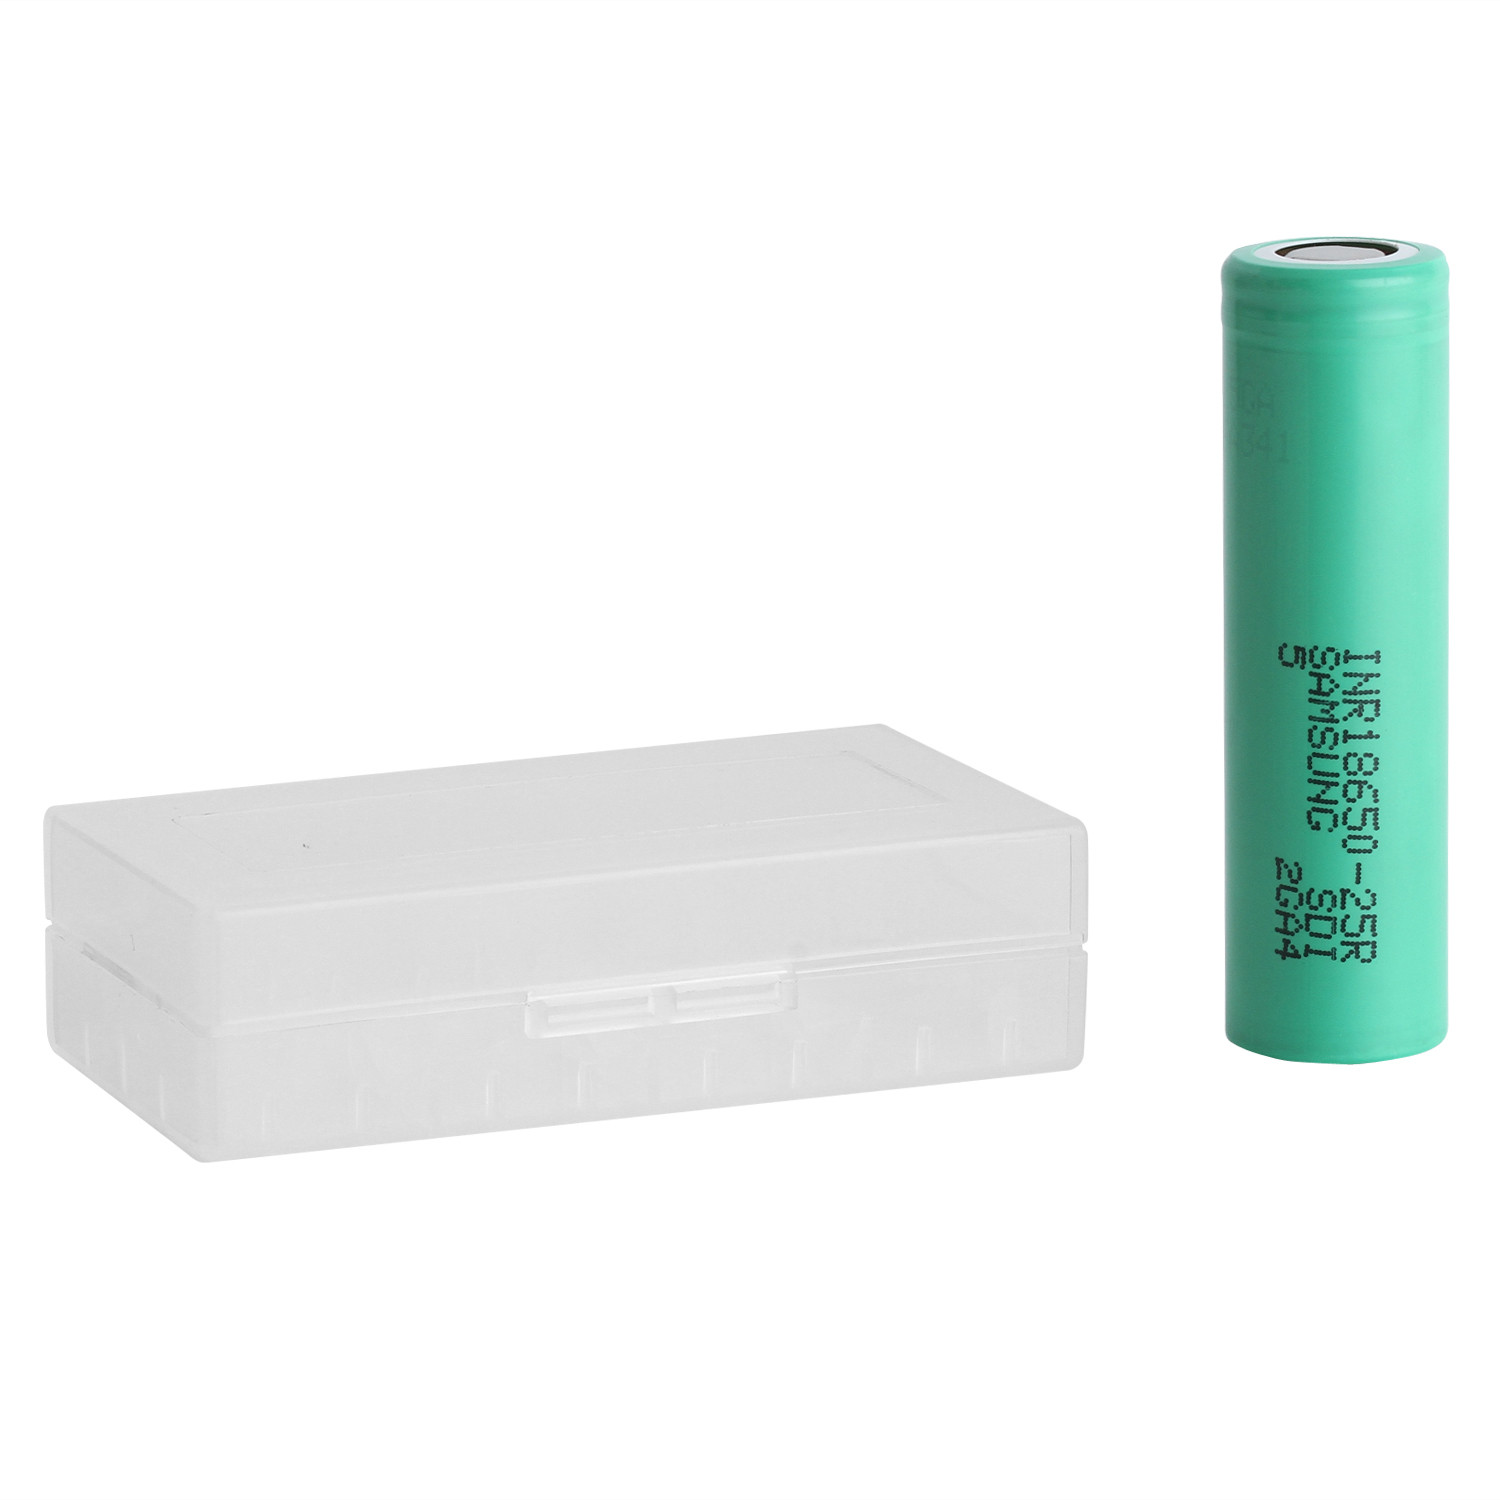 Samsung 25R 18650 2500mAh Battery | Accessories